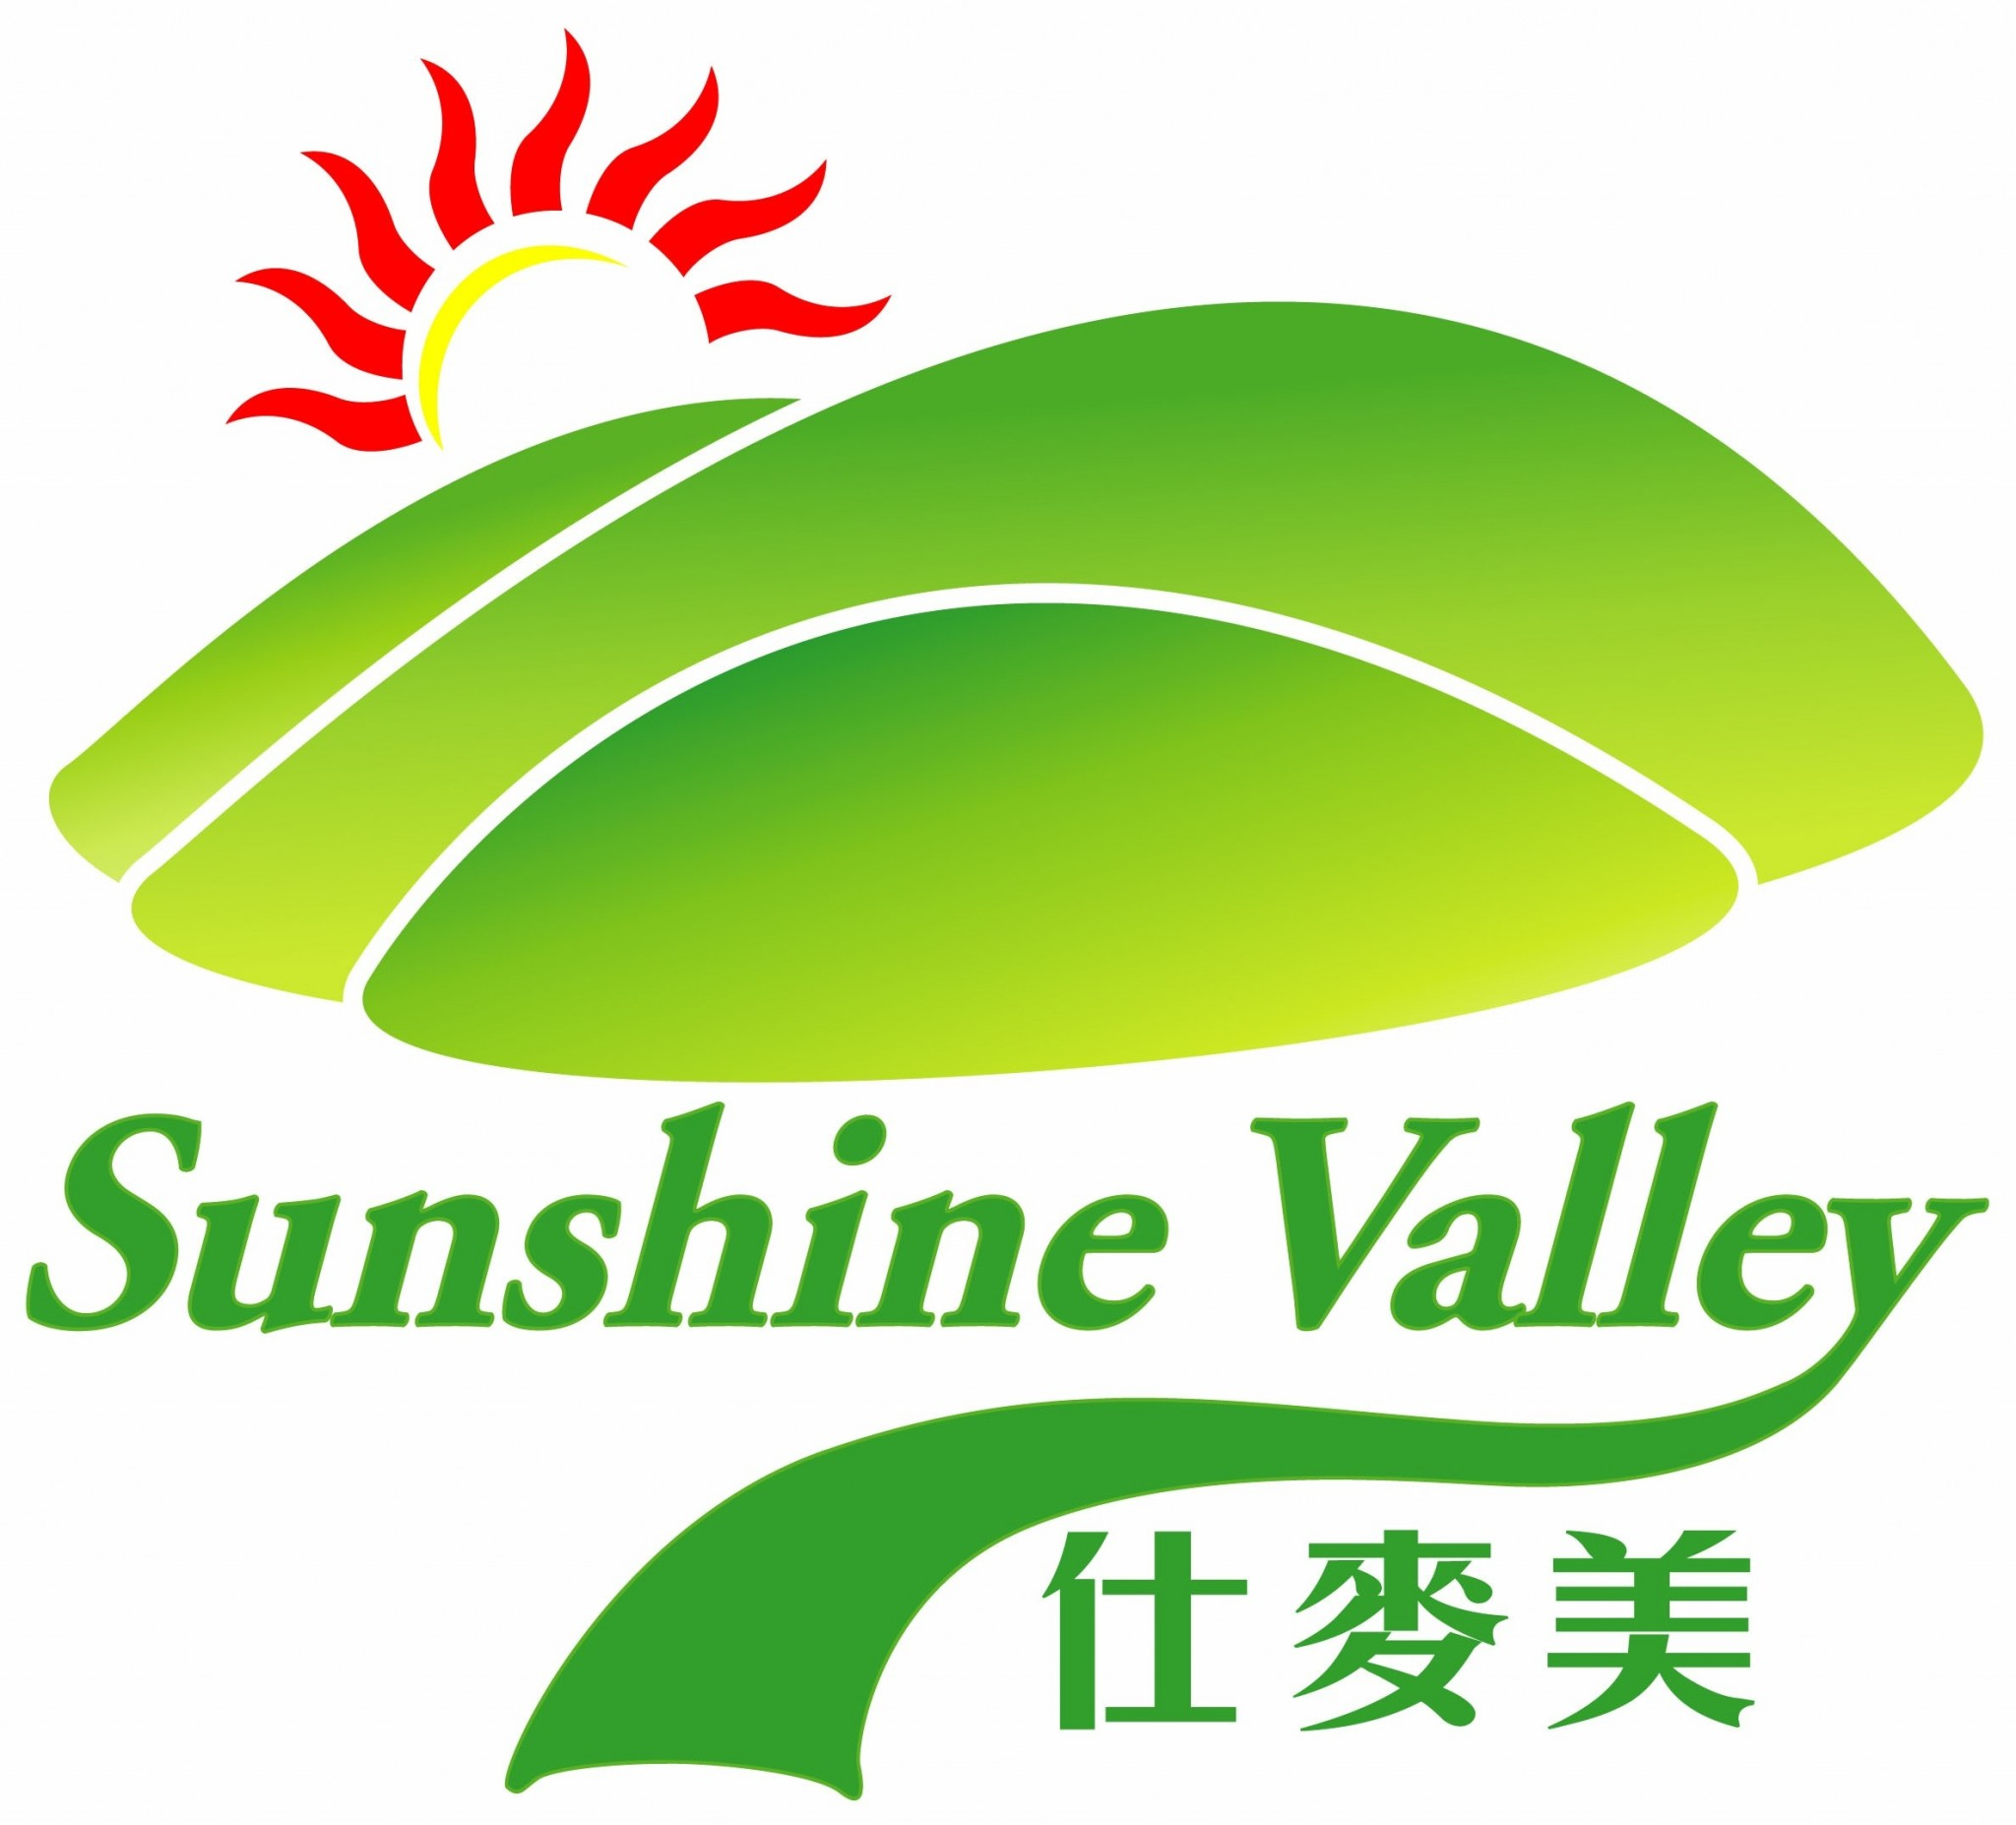 Sunshinevalley